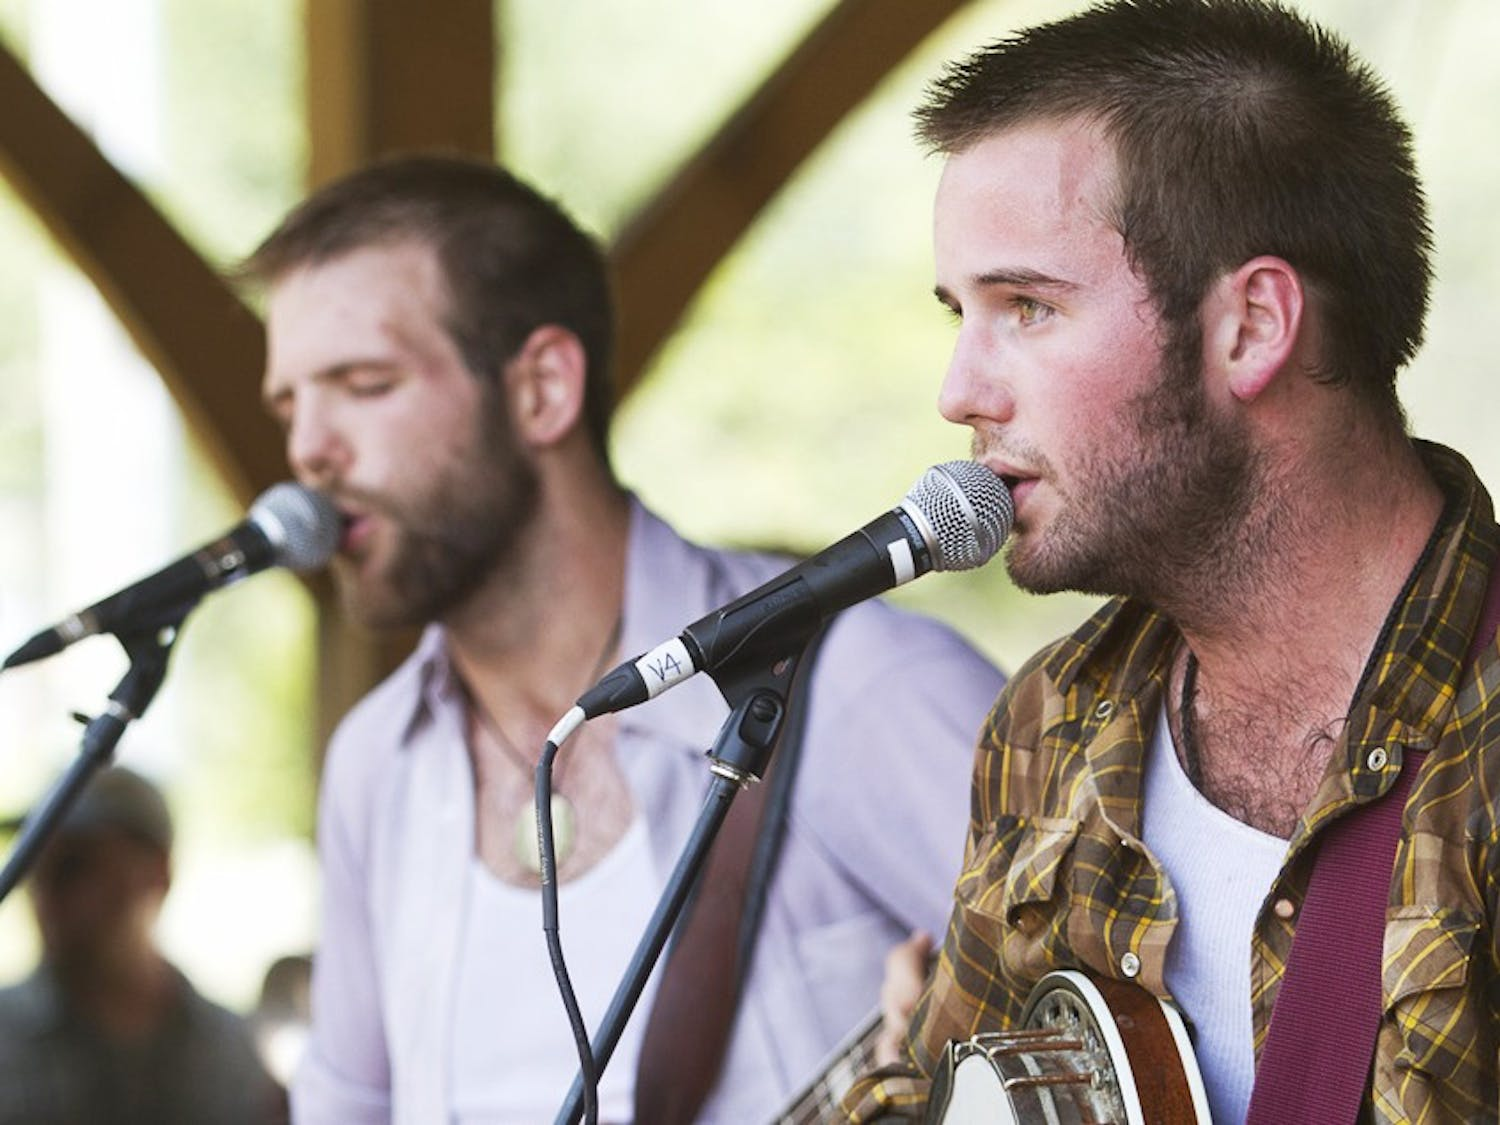 Members of Holy Ghost Tent Revival will back up Mike Quinn at this weekend's Shakori Hills GrassRoots Festival.